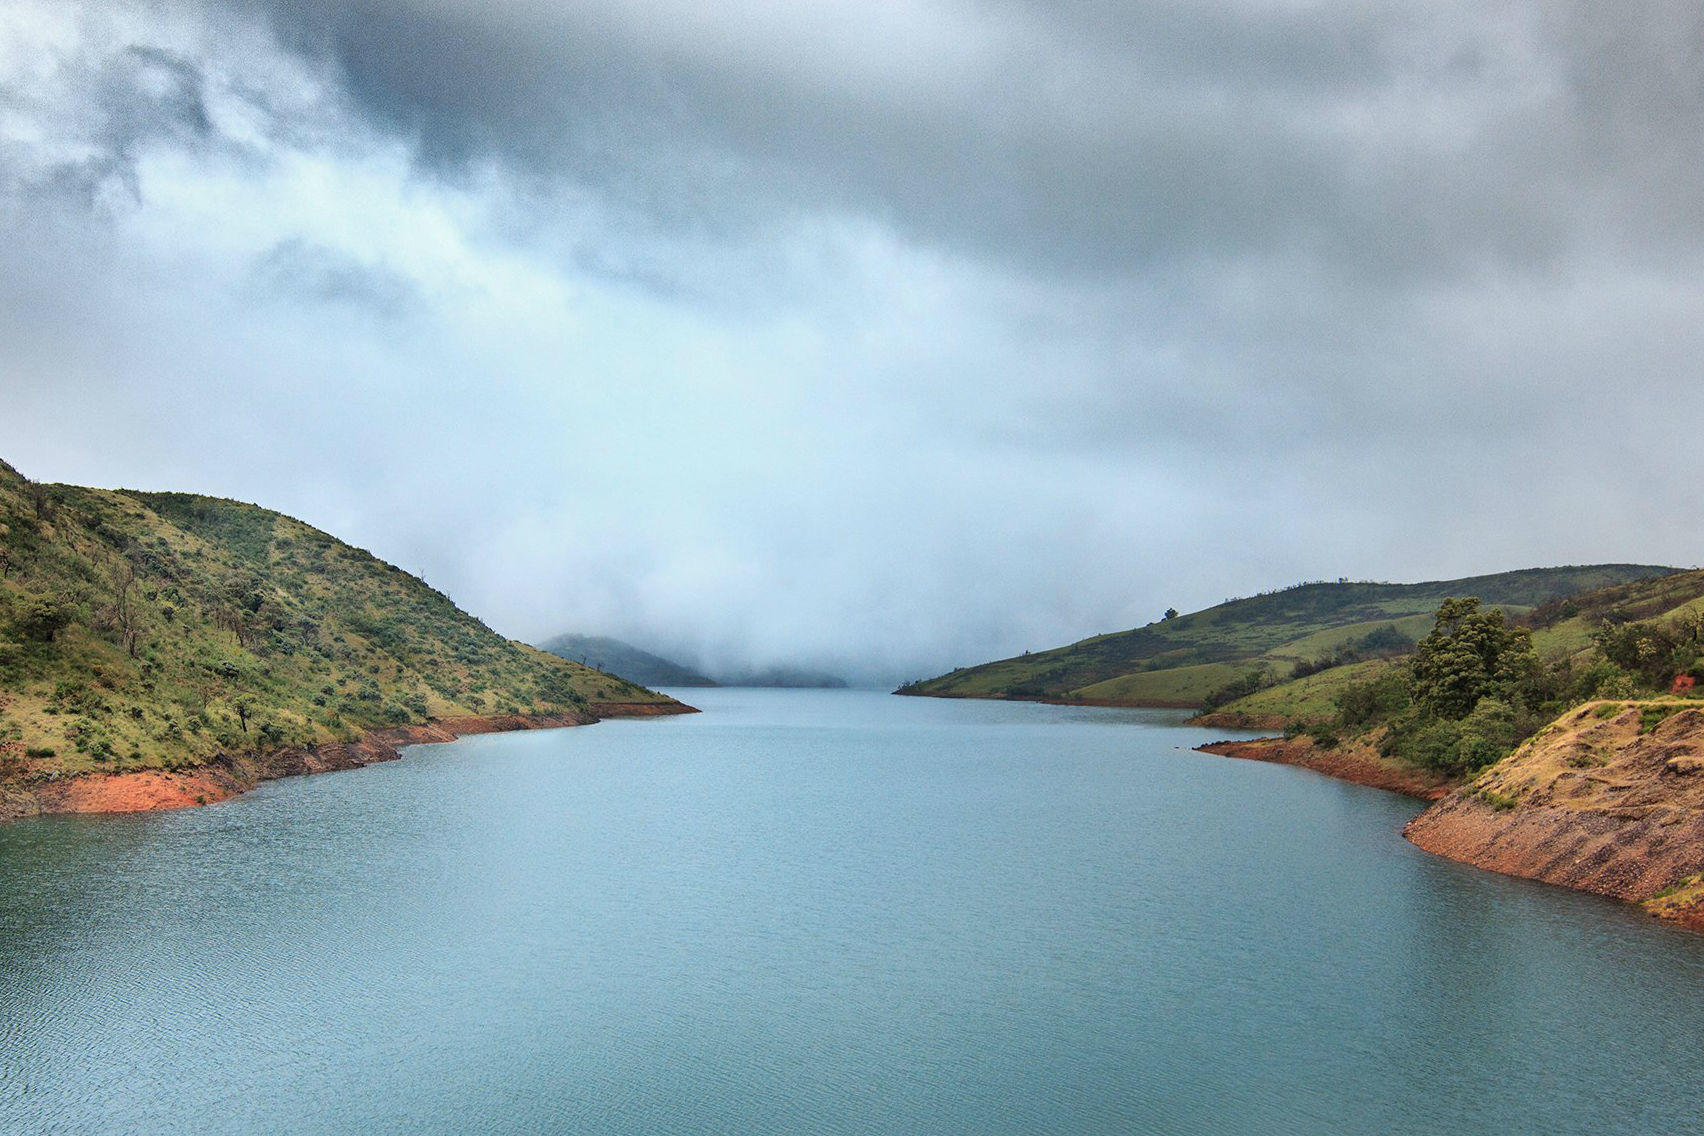 Experiencing Ooty through its lakes